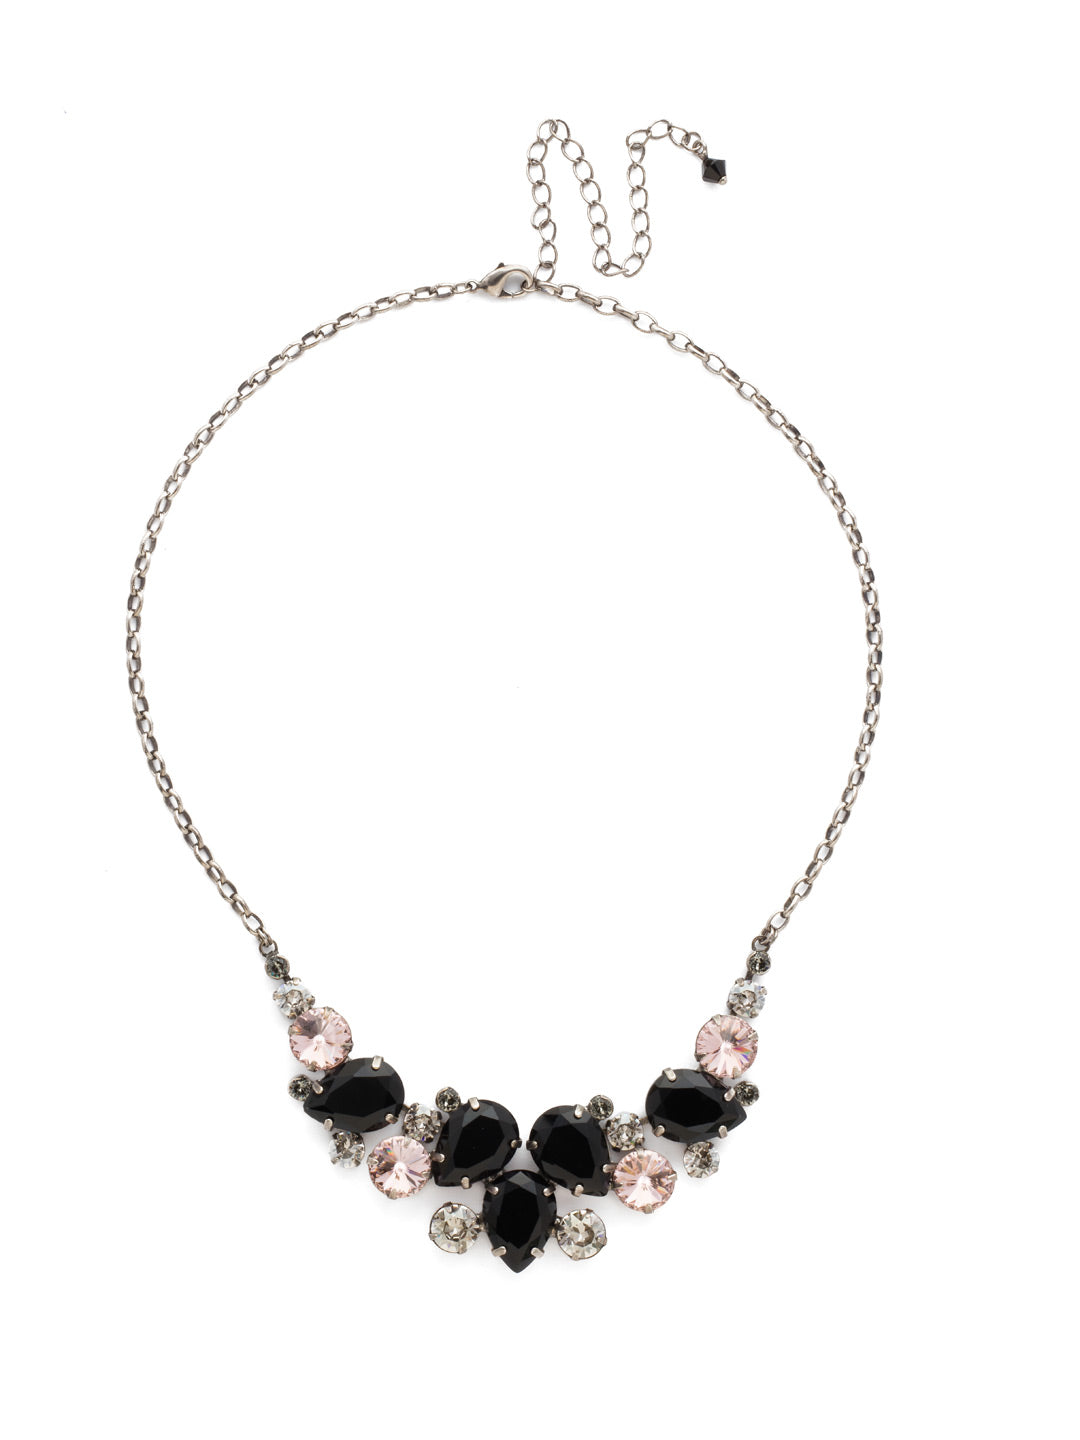 Nested Pear Statement Necklace - NDJ14ASCNO